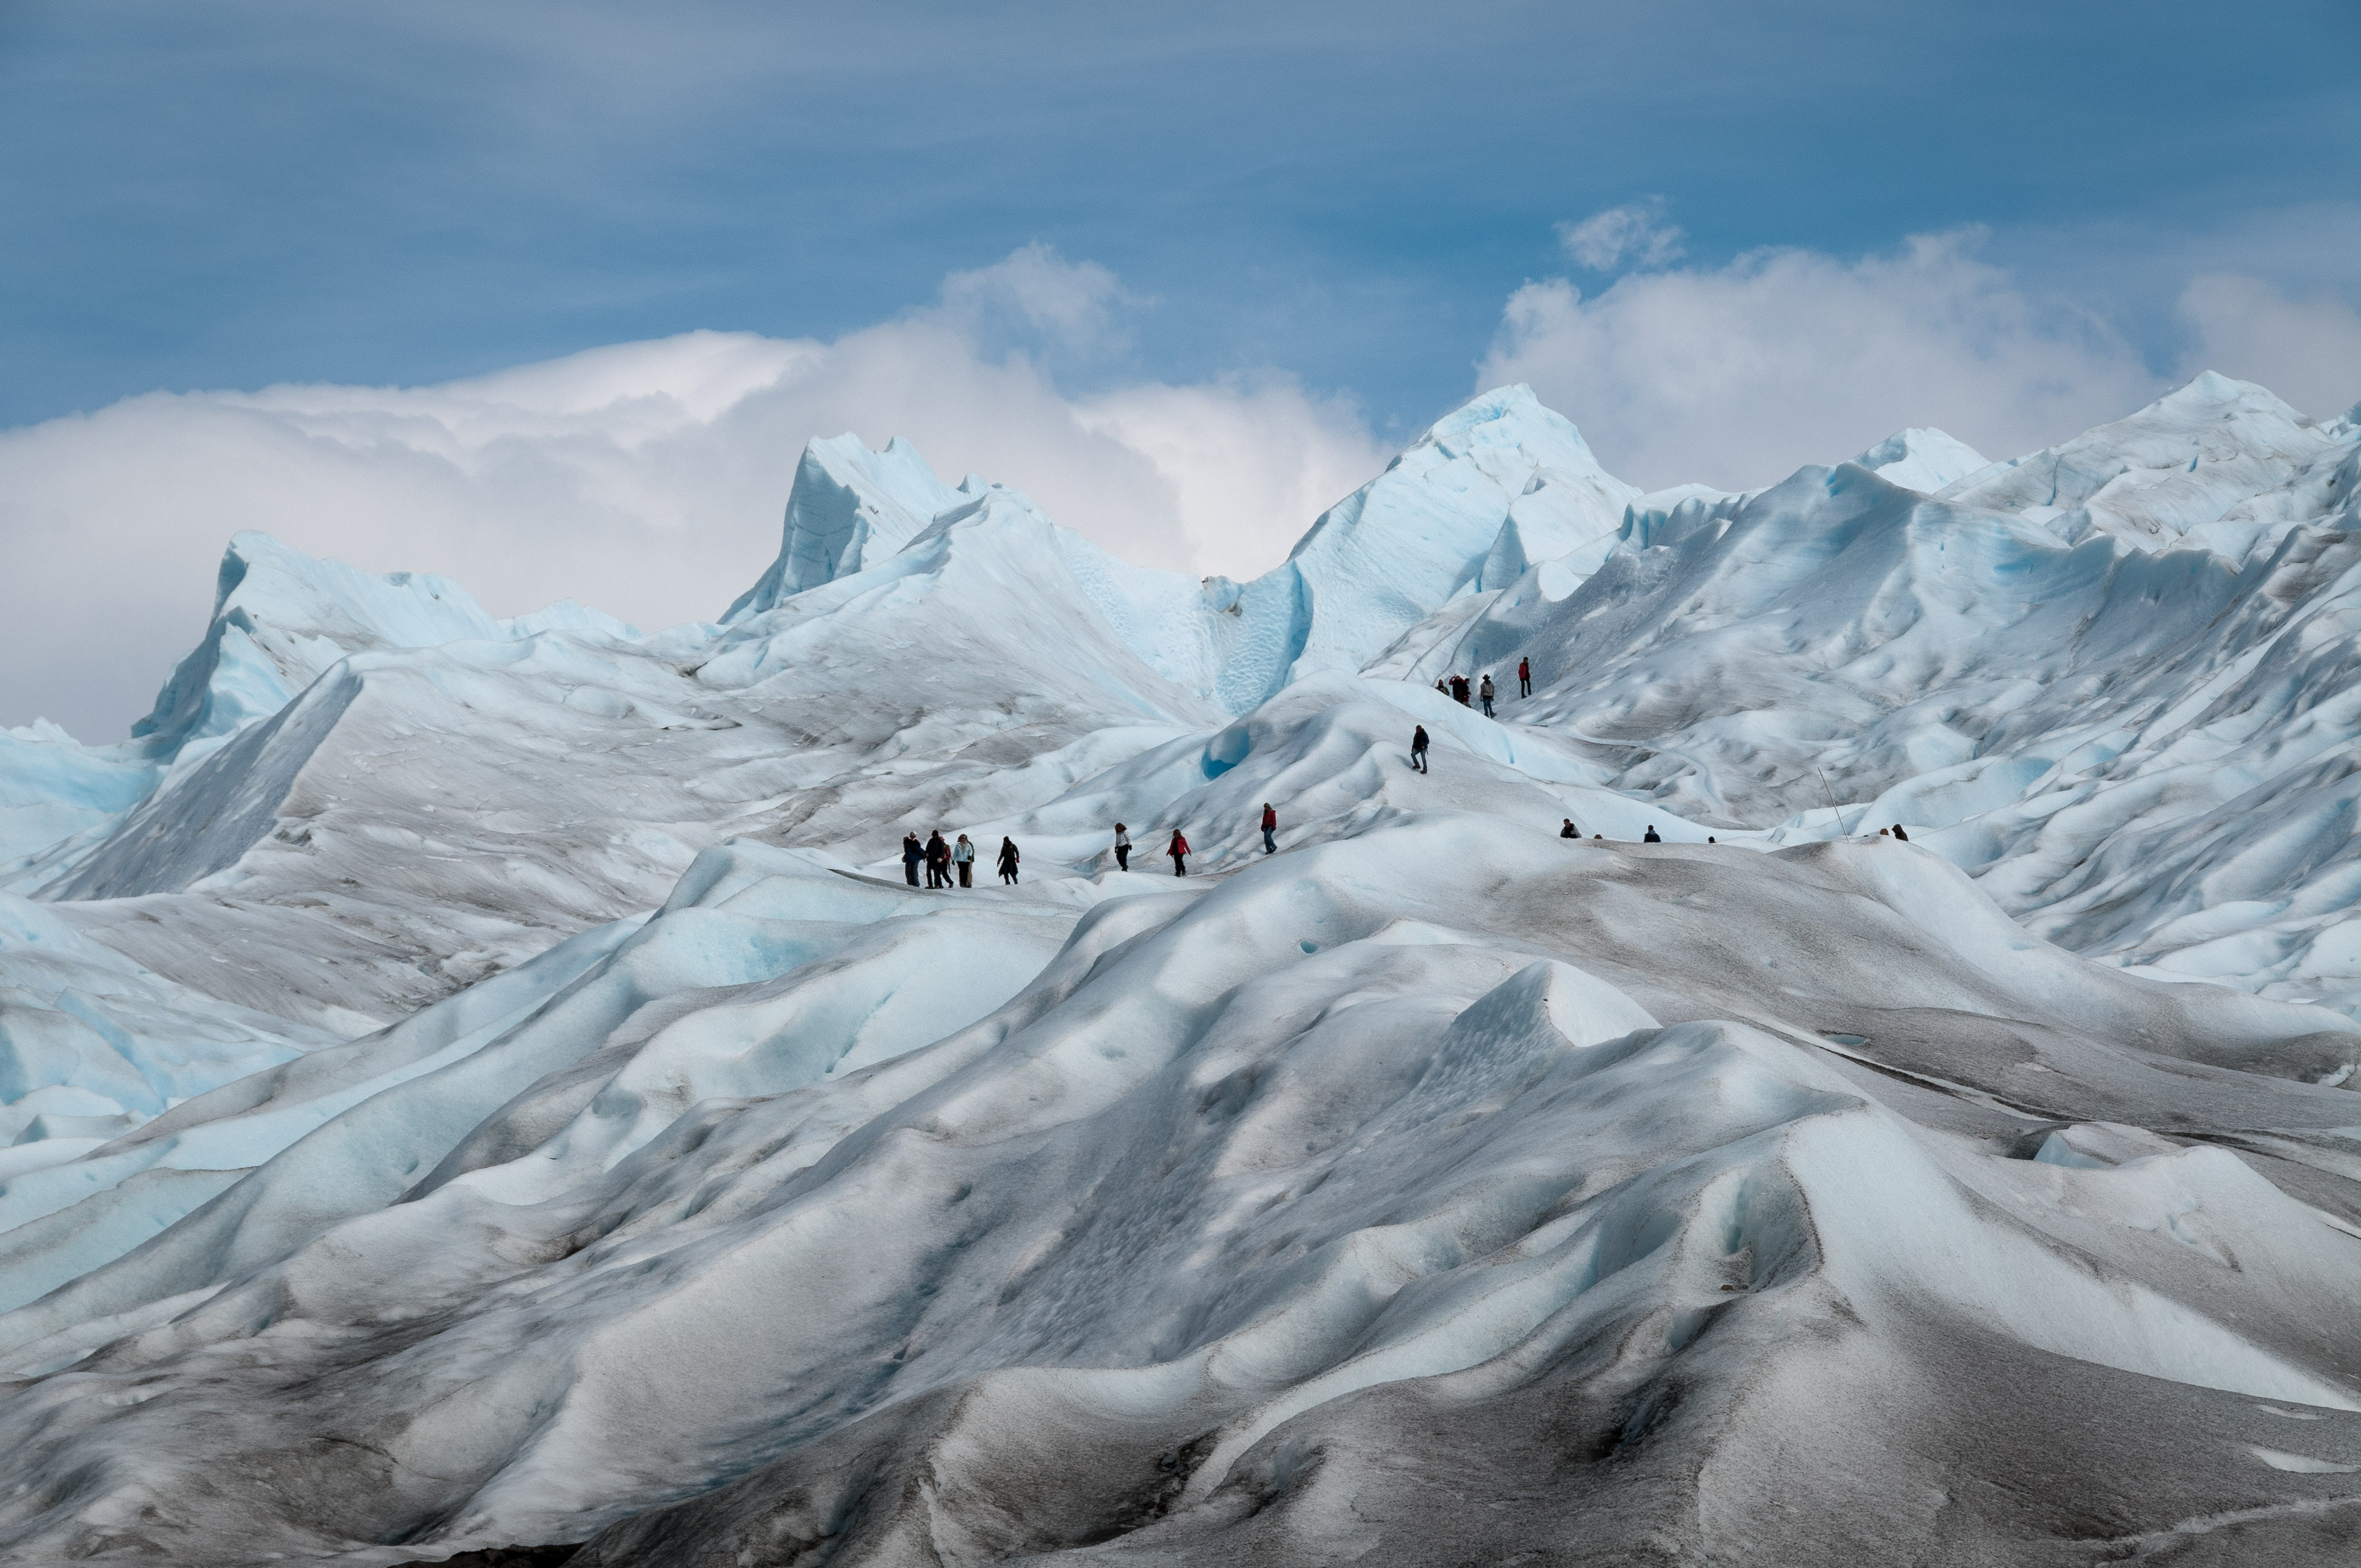 A group of trekkers climbing snow filled mountains with clear skies.